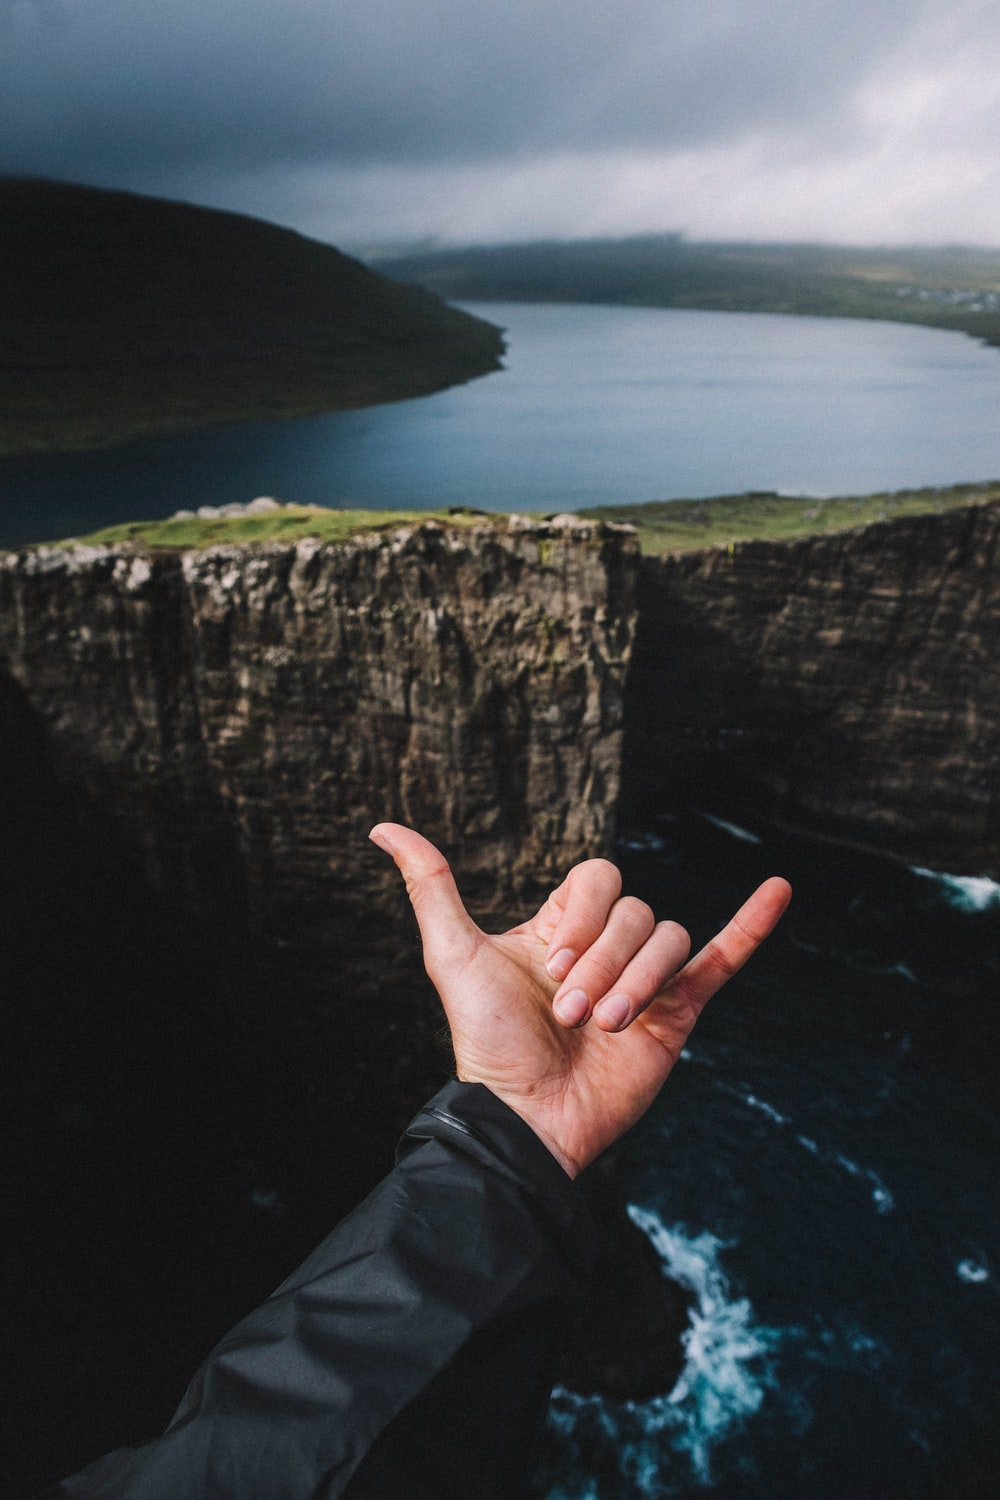 person doing hand sign photograph